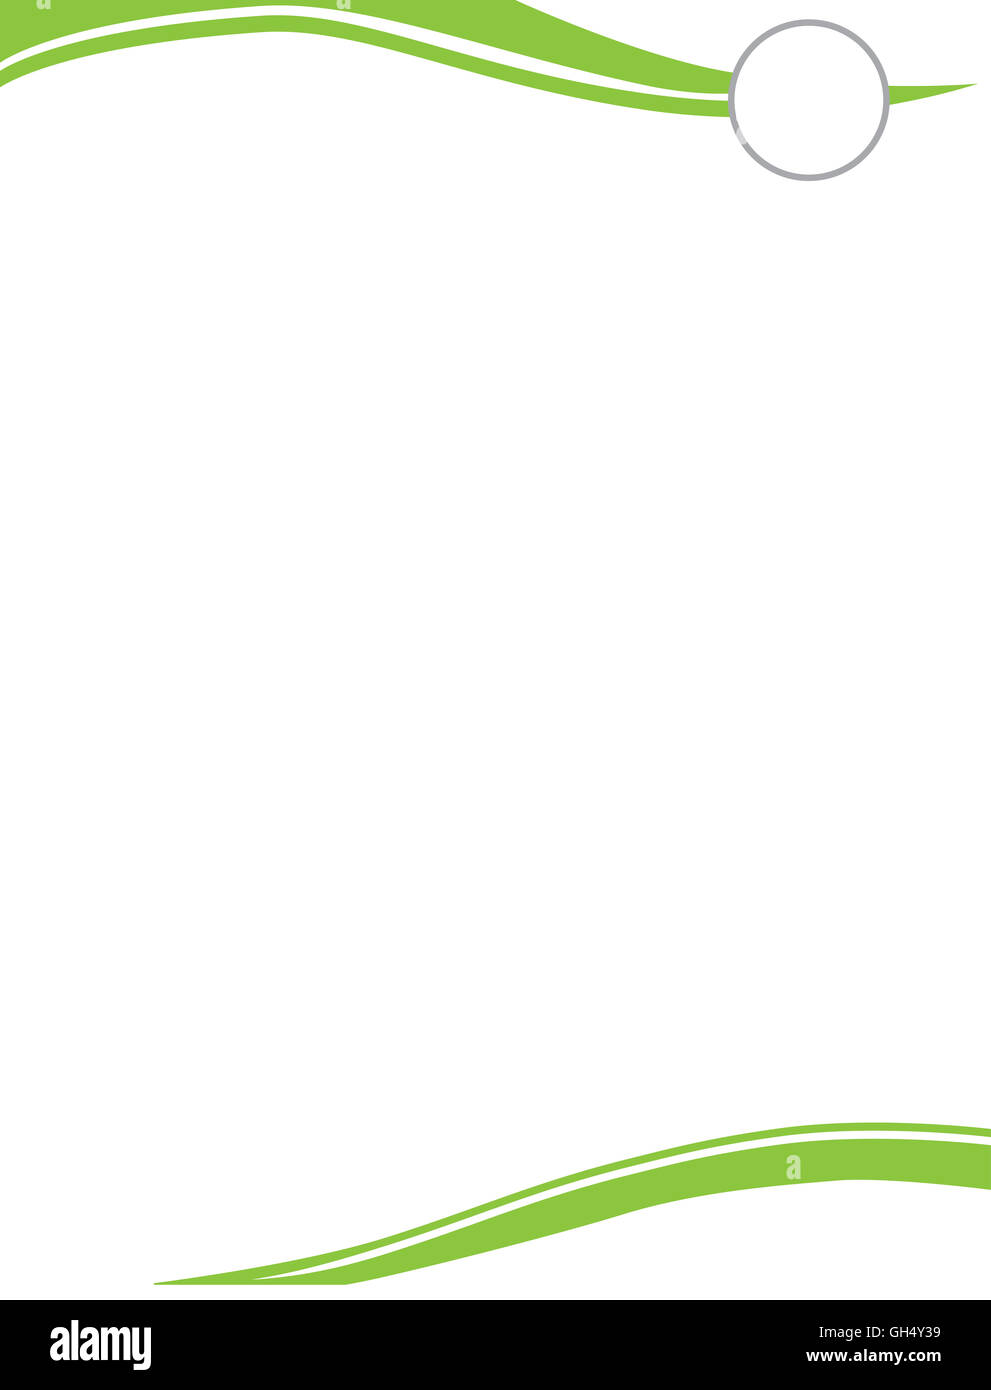 Swirl Letterhead Template with Circle for Logo Green - Stock Image